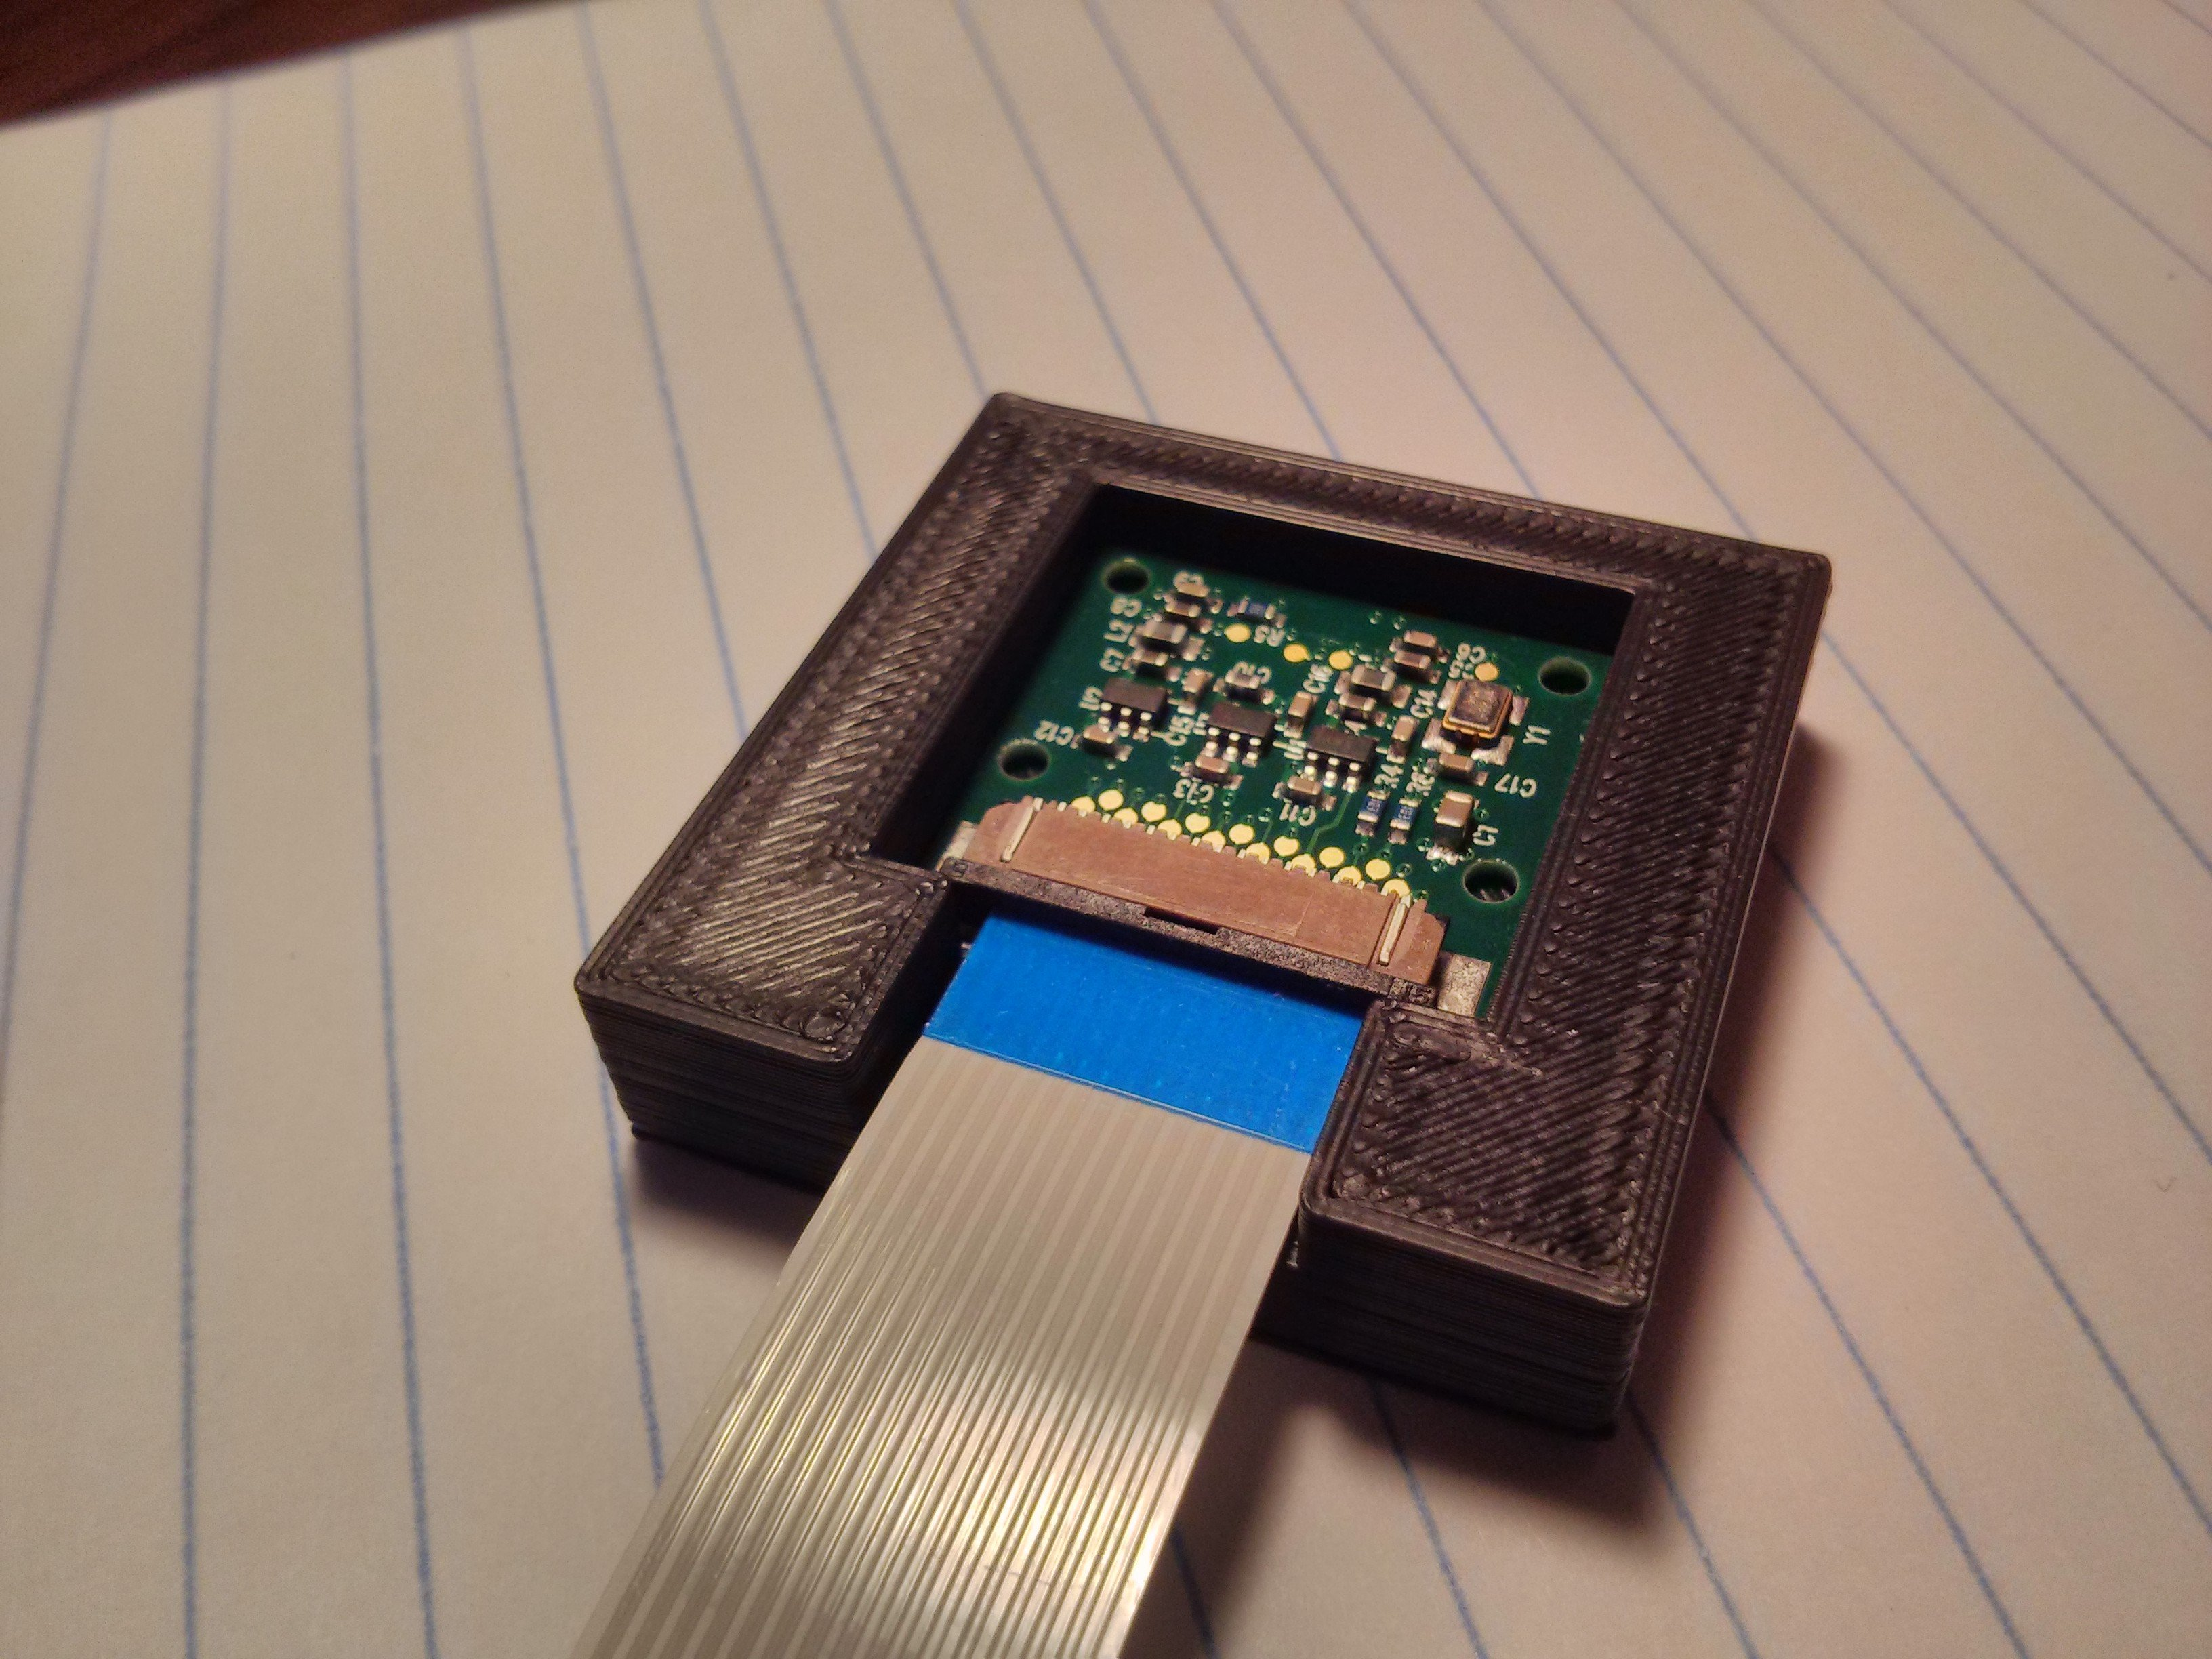 3D Printing Adapter to fit Raspberry Pi Camera to Microscope